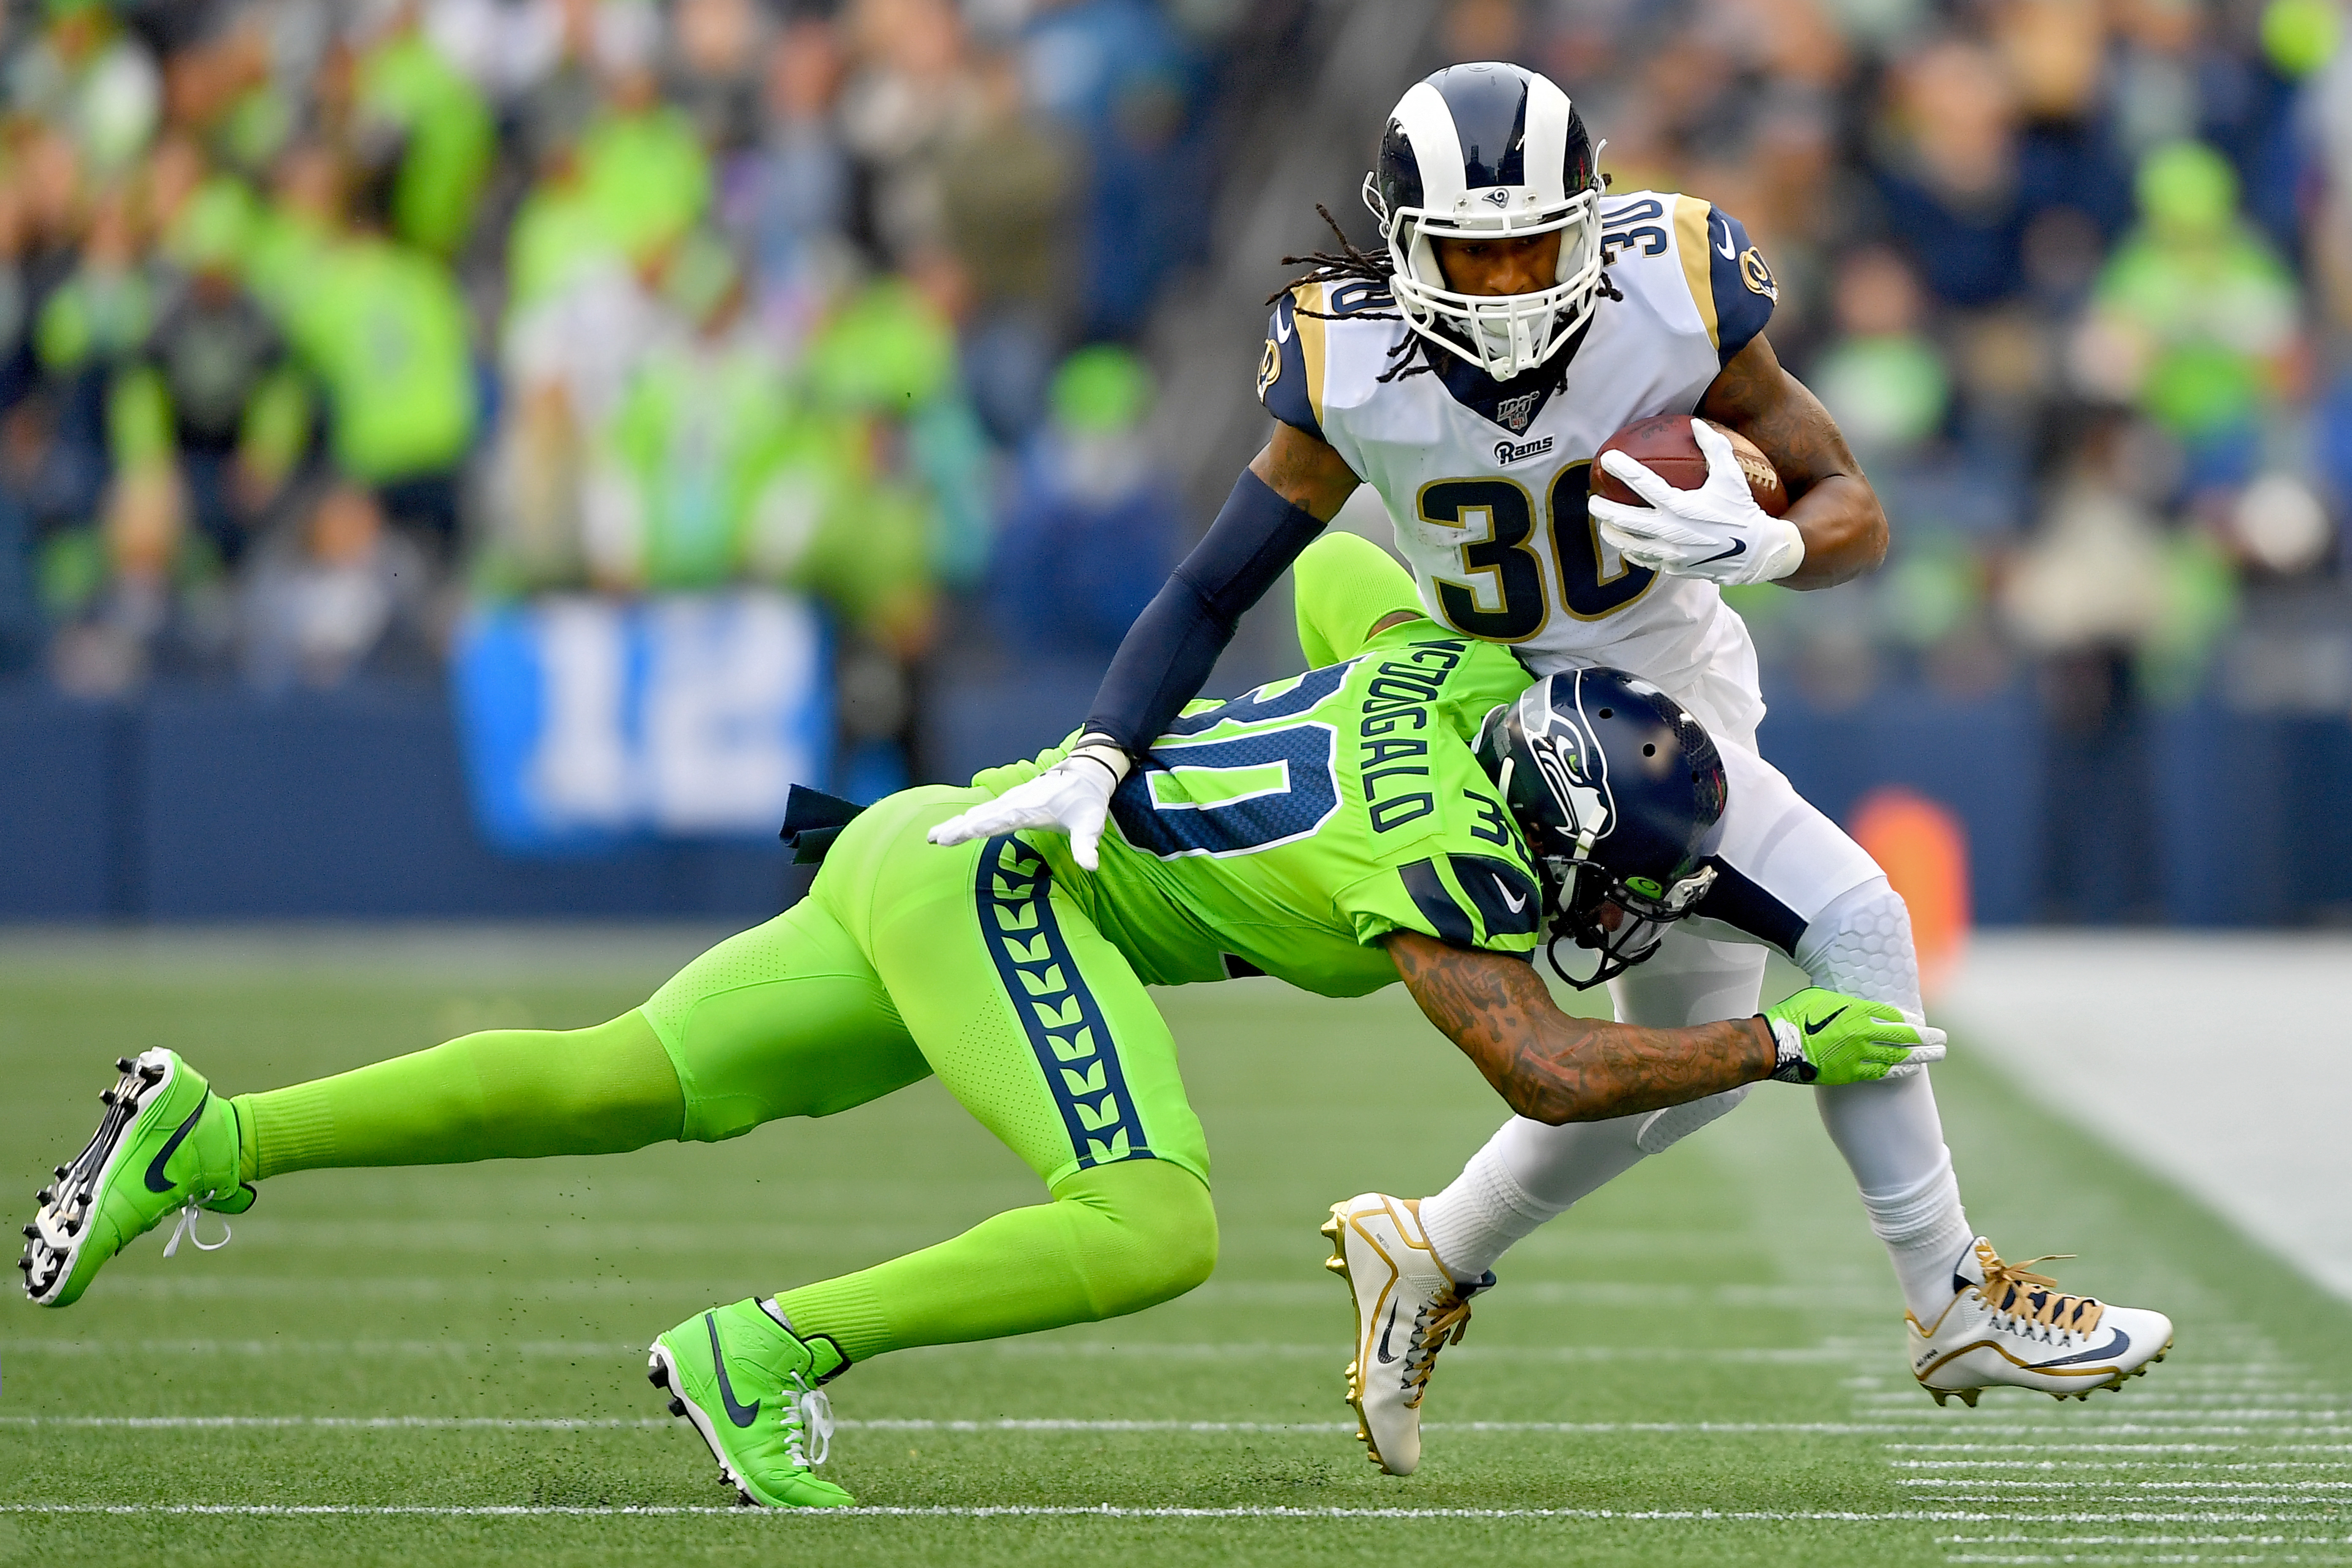 Rams Vs Seahawks 4 Things To Know For Week 14 Matchup